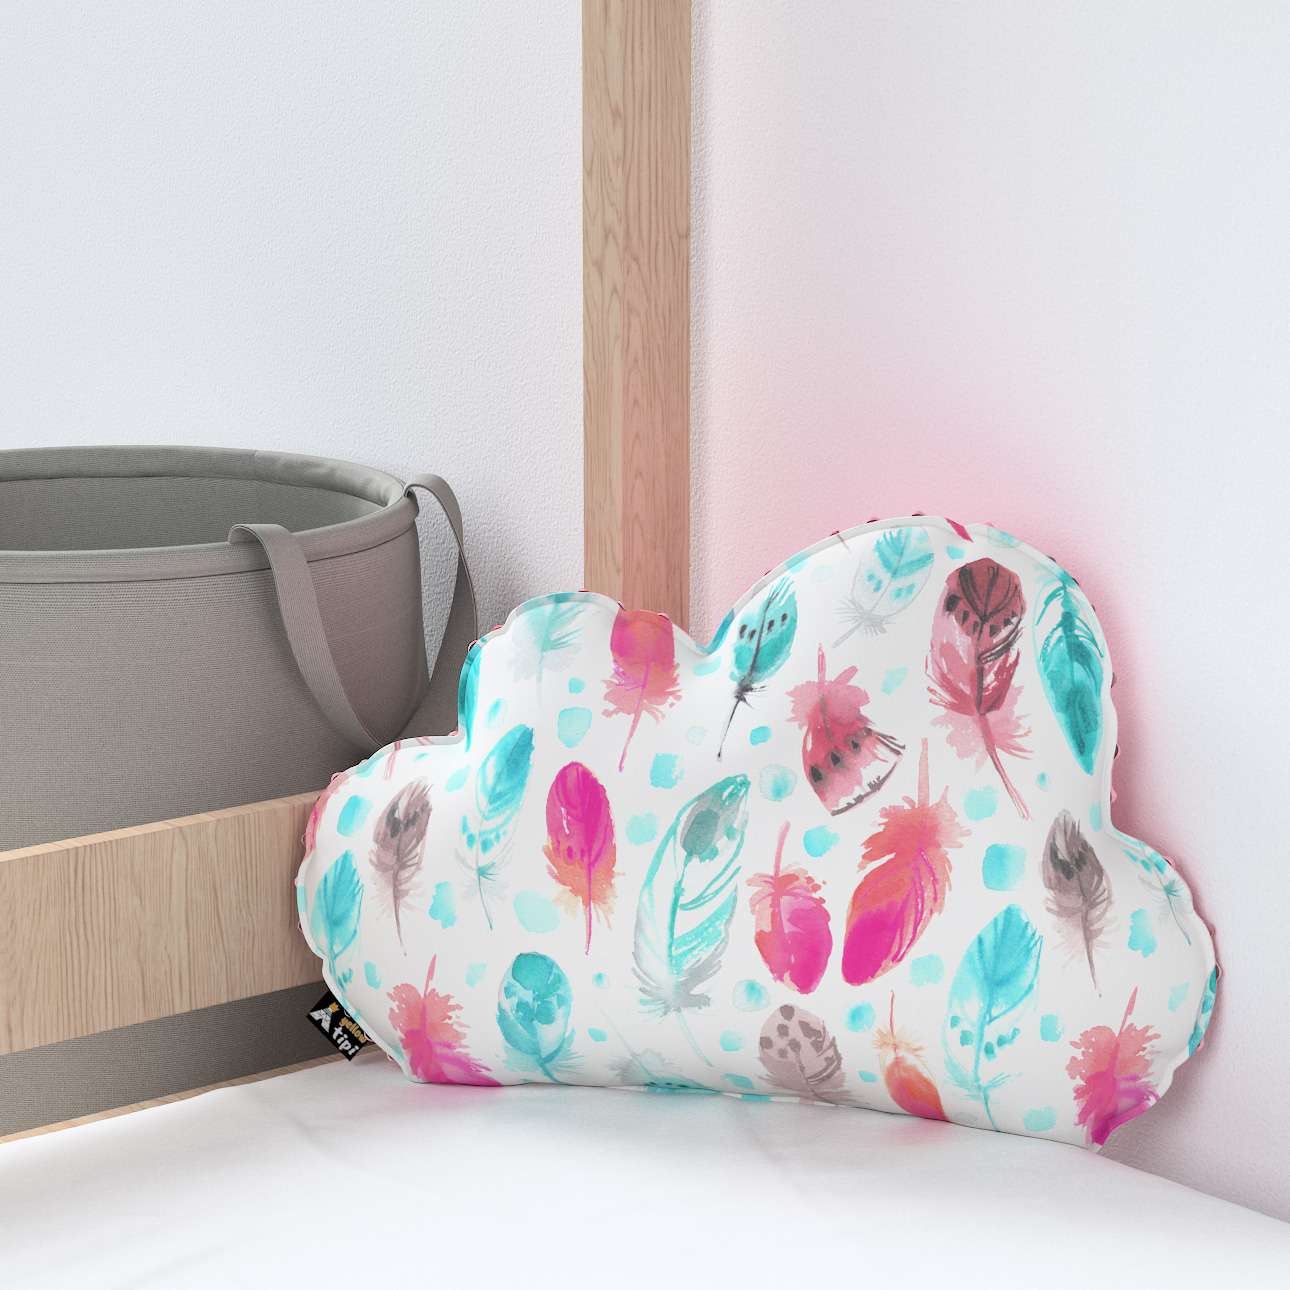 Soft Cloud pillow with minky in collection Magic Collection, fabric: 500-17